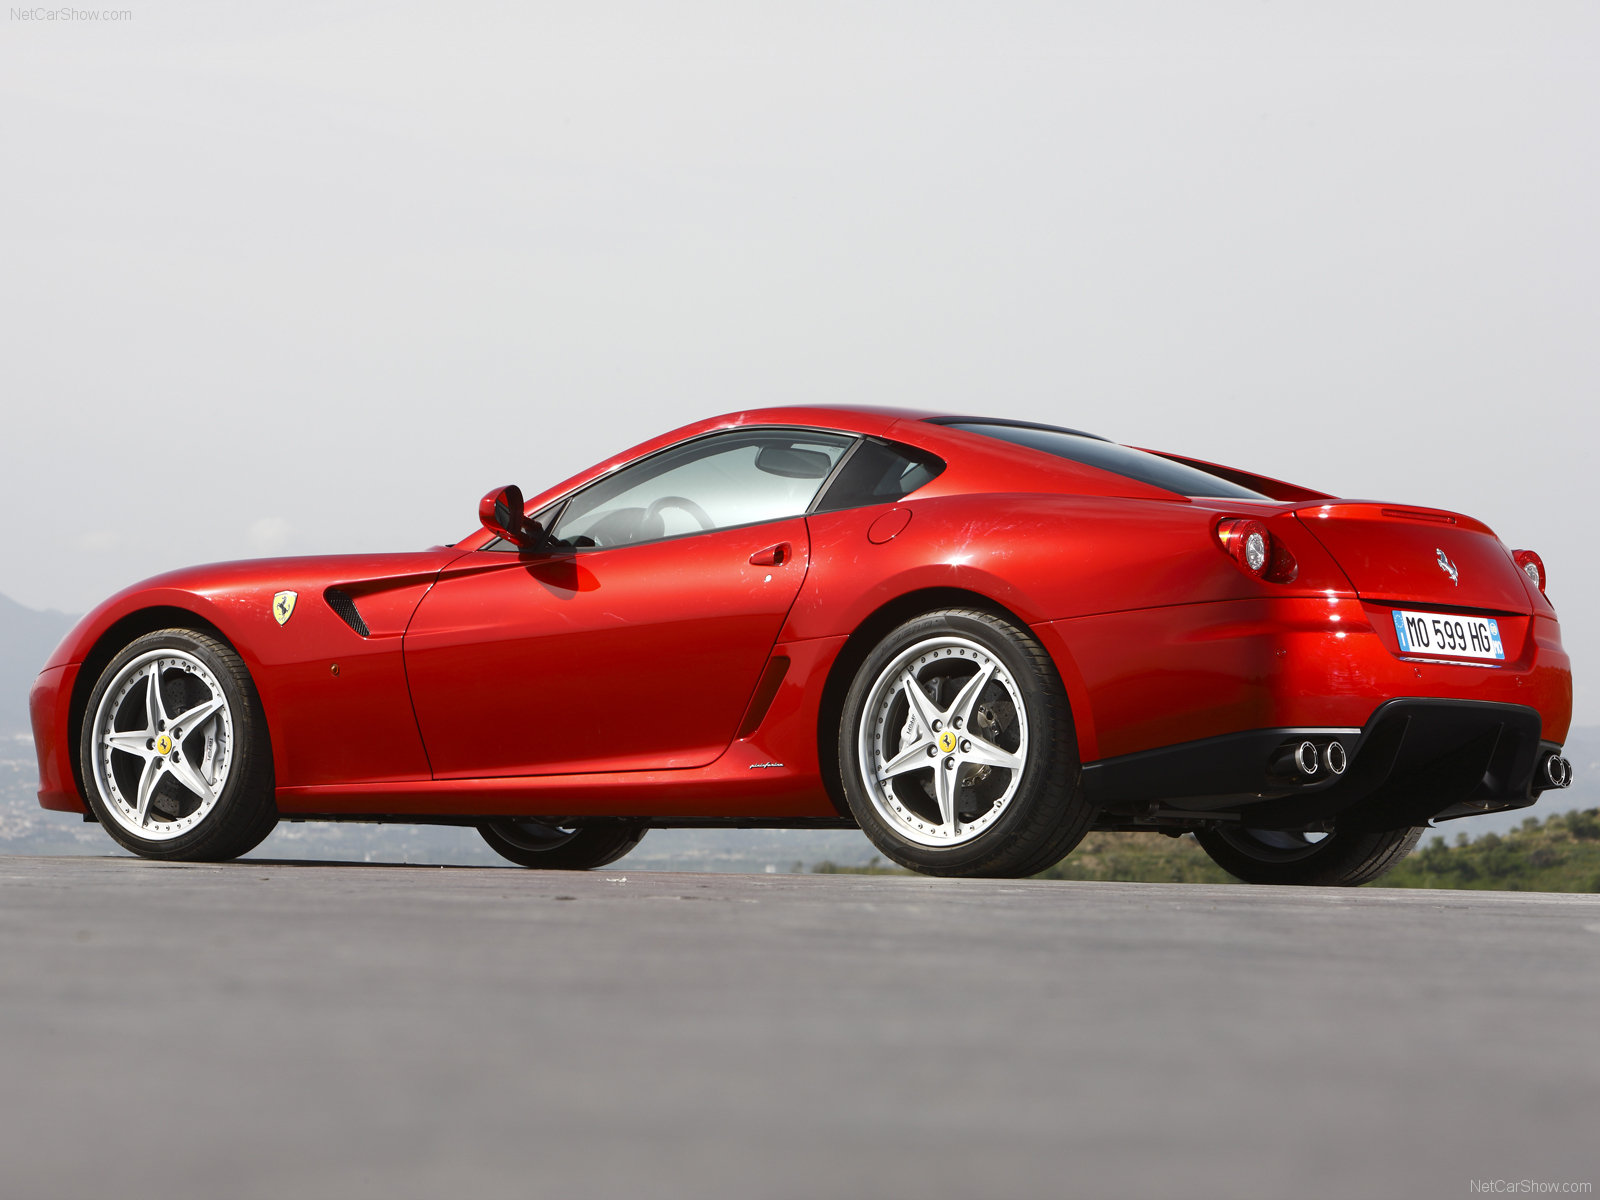 Ferrari 599 GTB Fiorano HGTE picture  65248  Ferrari photo gallery